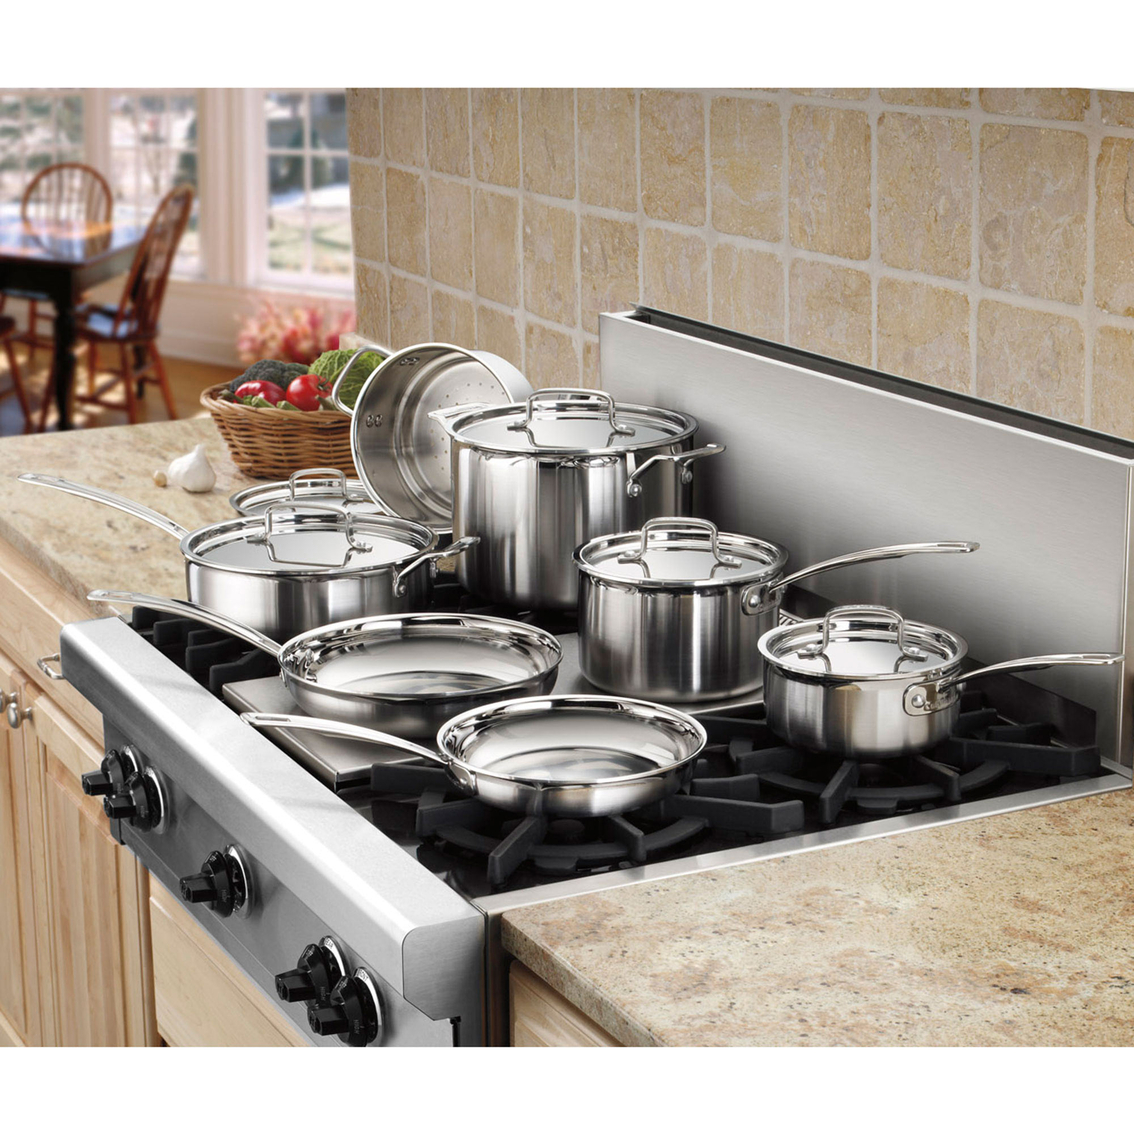 Cuisinart Multiclad Pro Triple Ply Stainless Steel 12 Pc Cookware Set